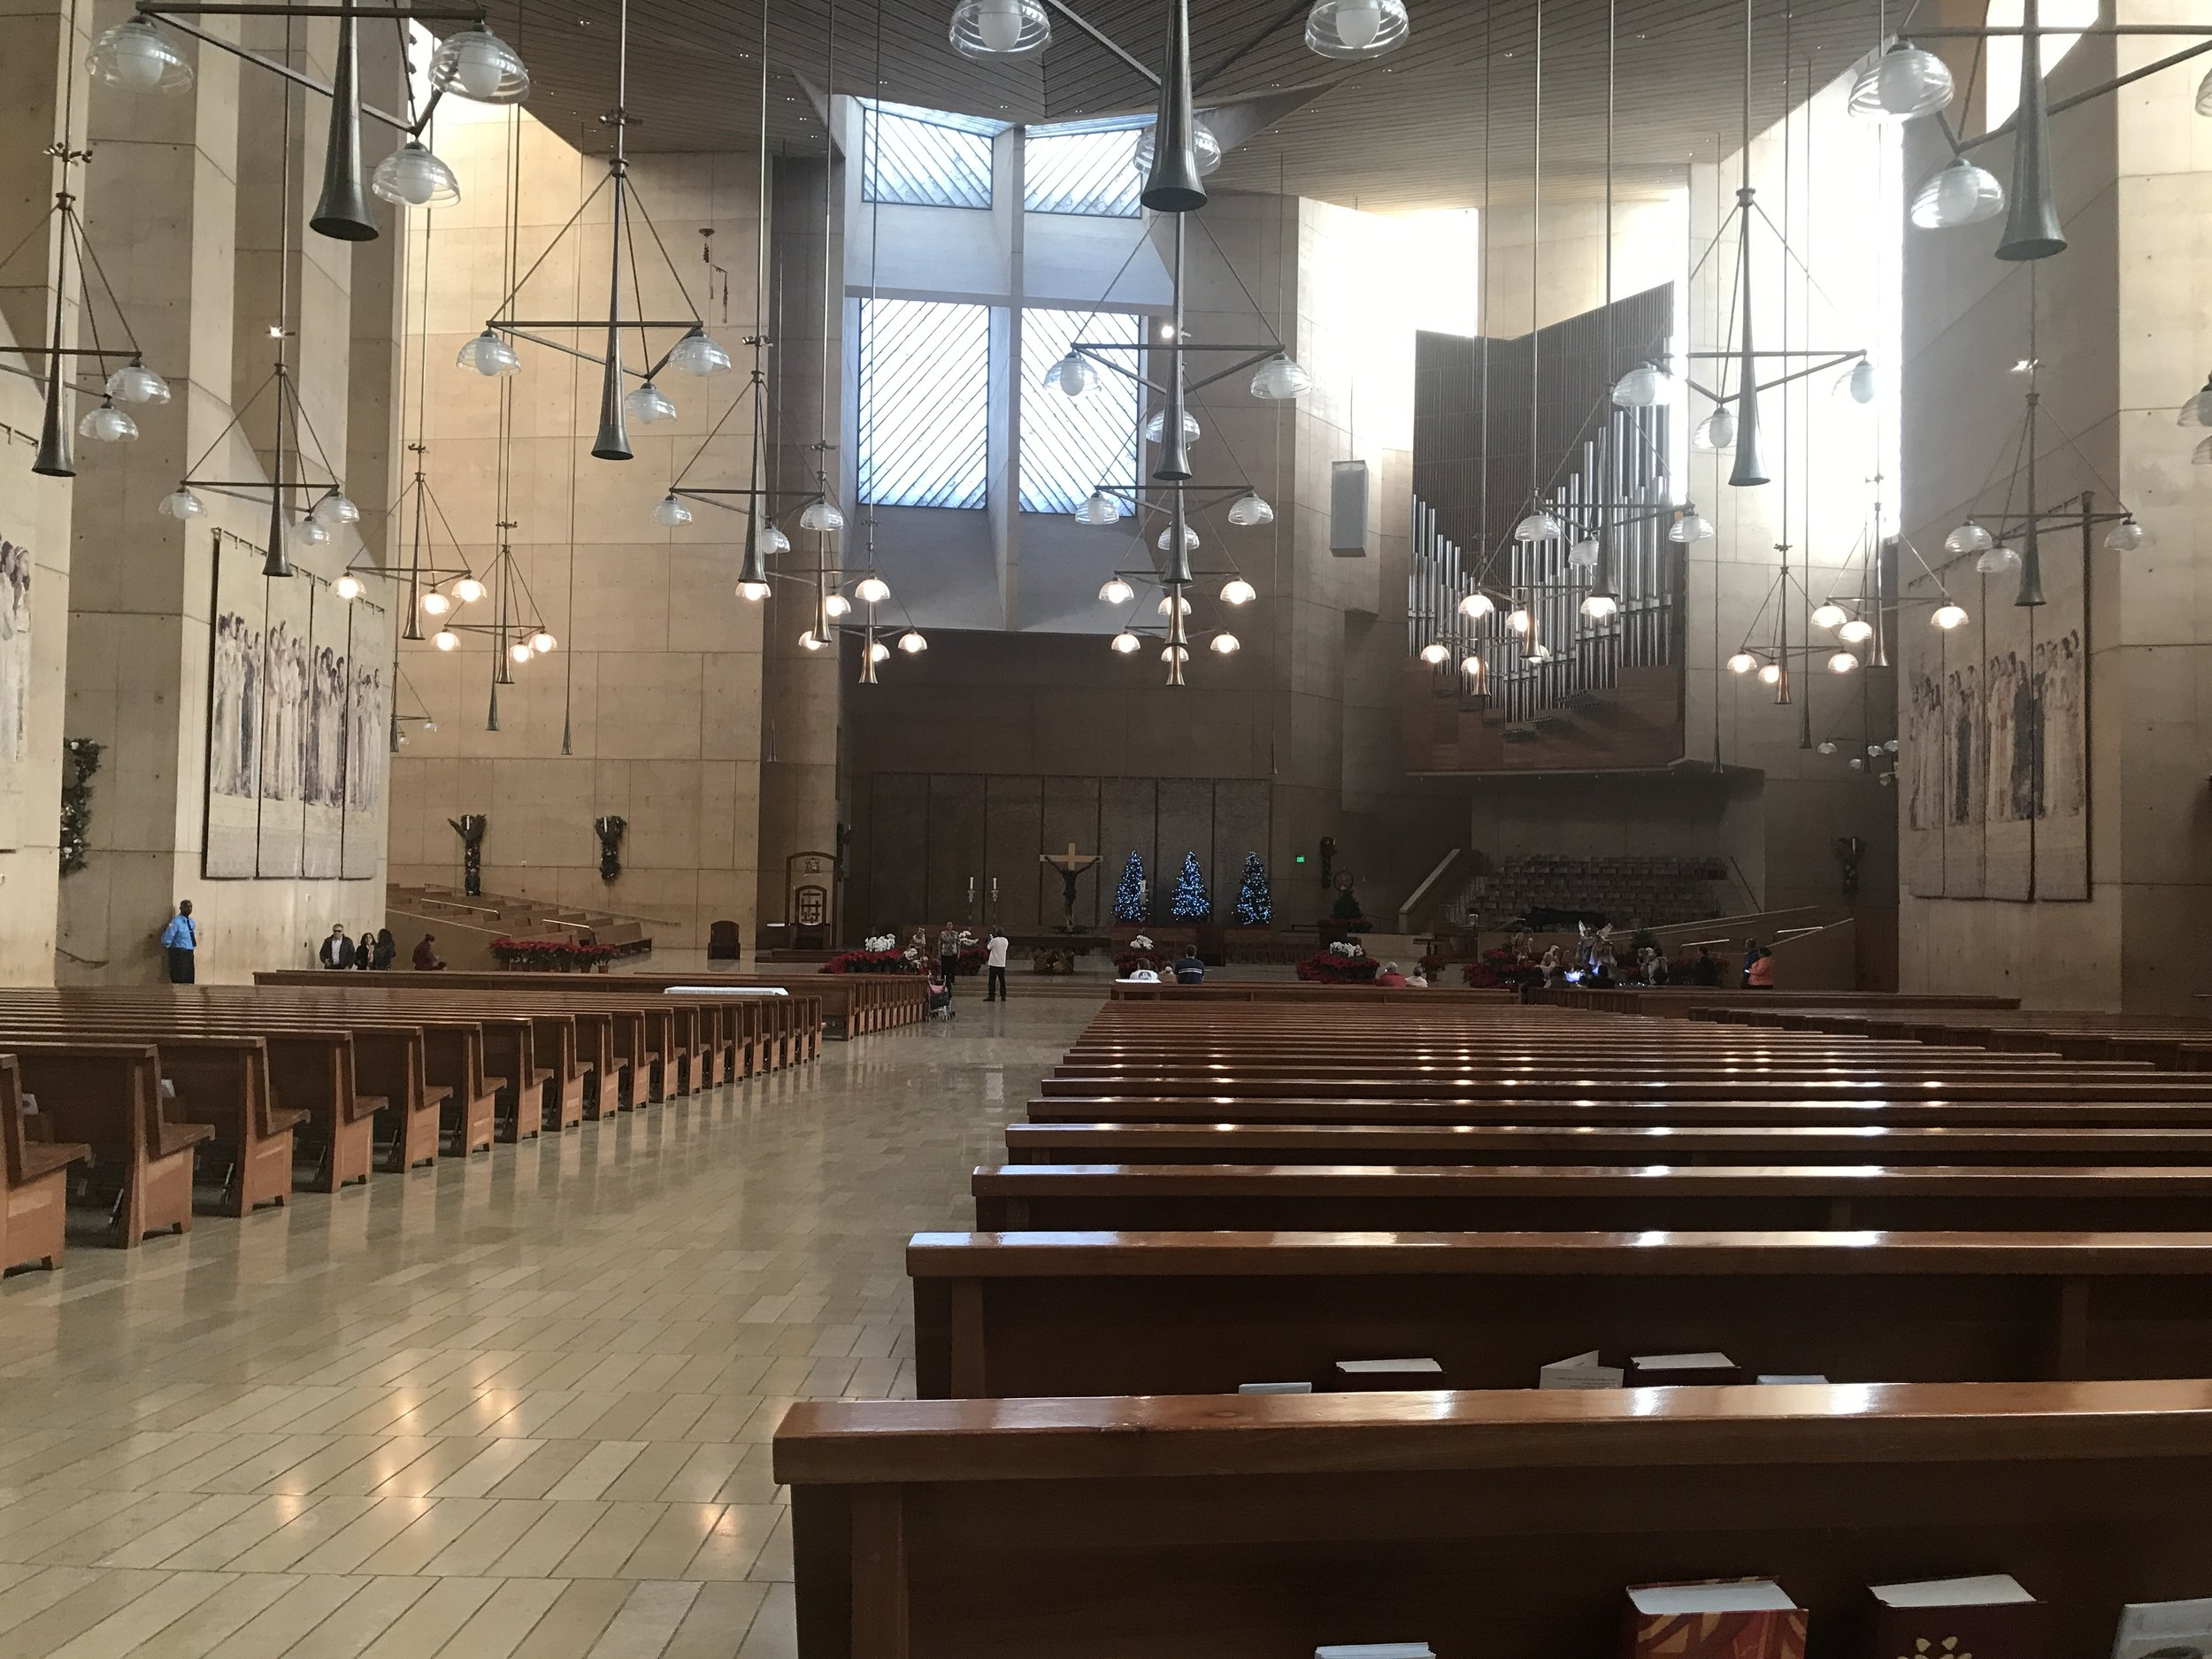 Interior of Cathedral of Our Lady of the Angels